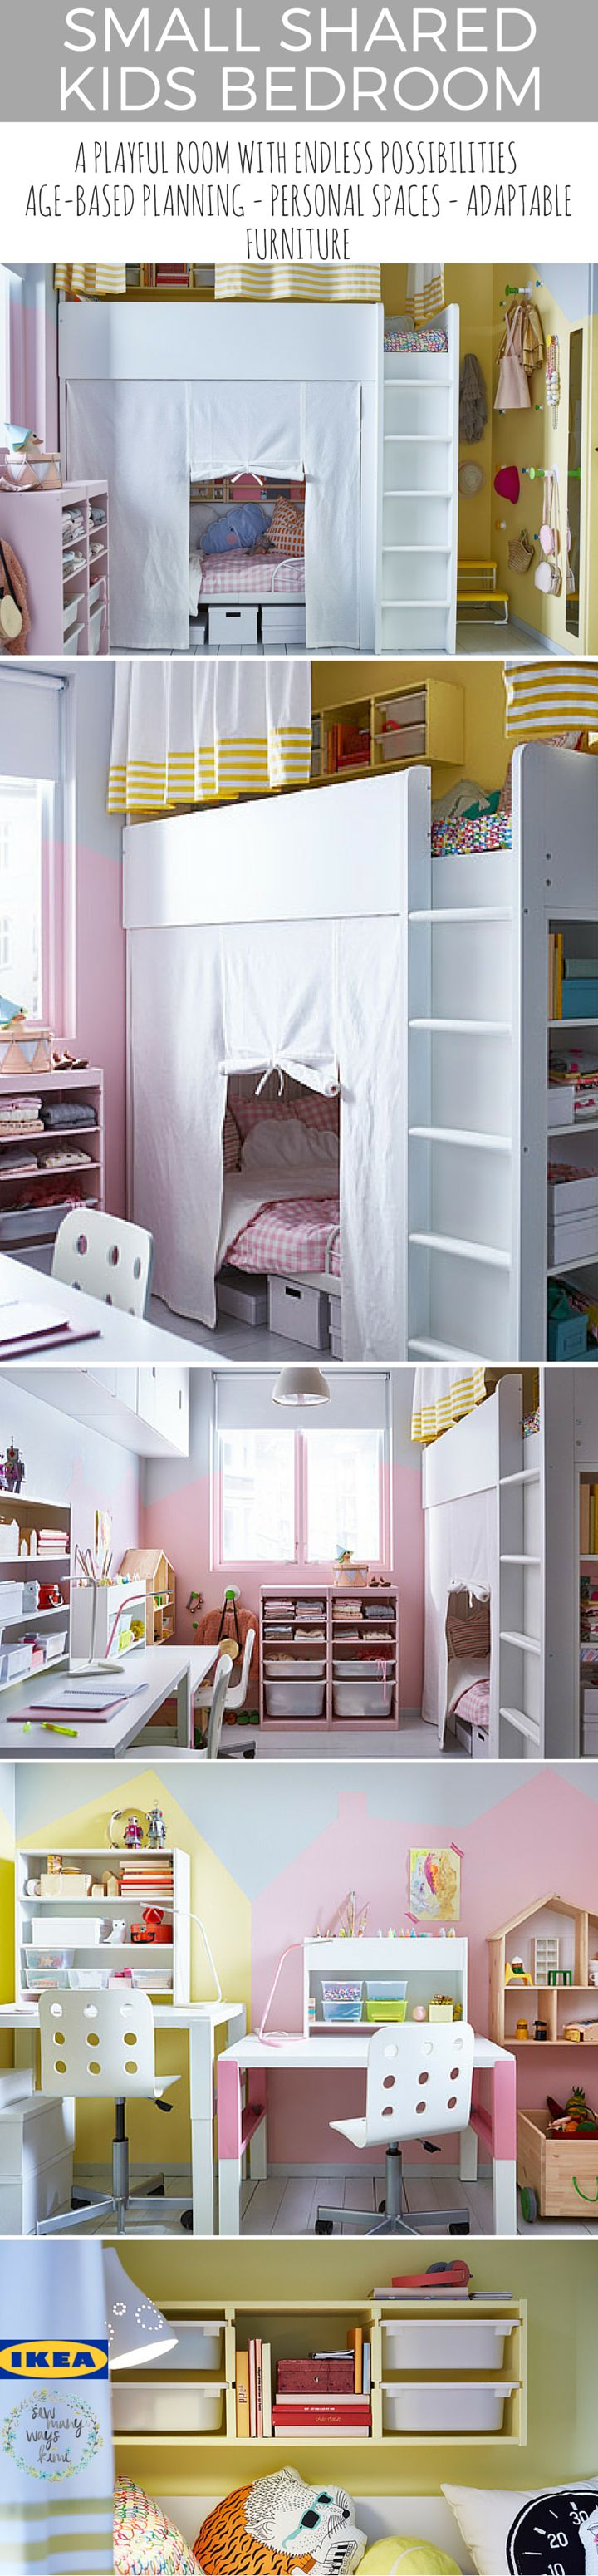 best 25 ikea girls room ideas on pinterest girls bedroom ideas ikea girls bedroom and girls bedroom storage - Ikea Shared Kids Room